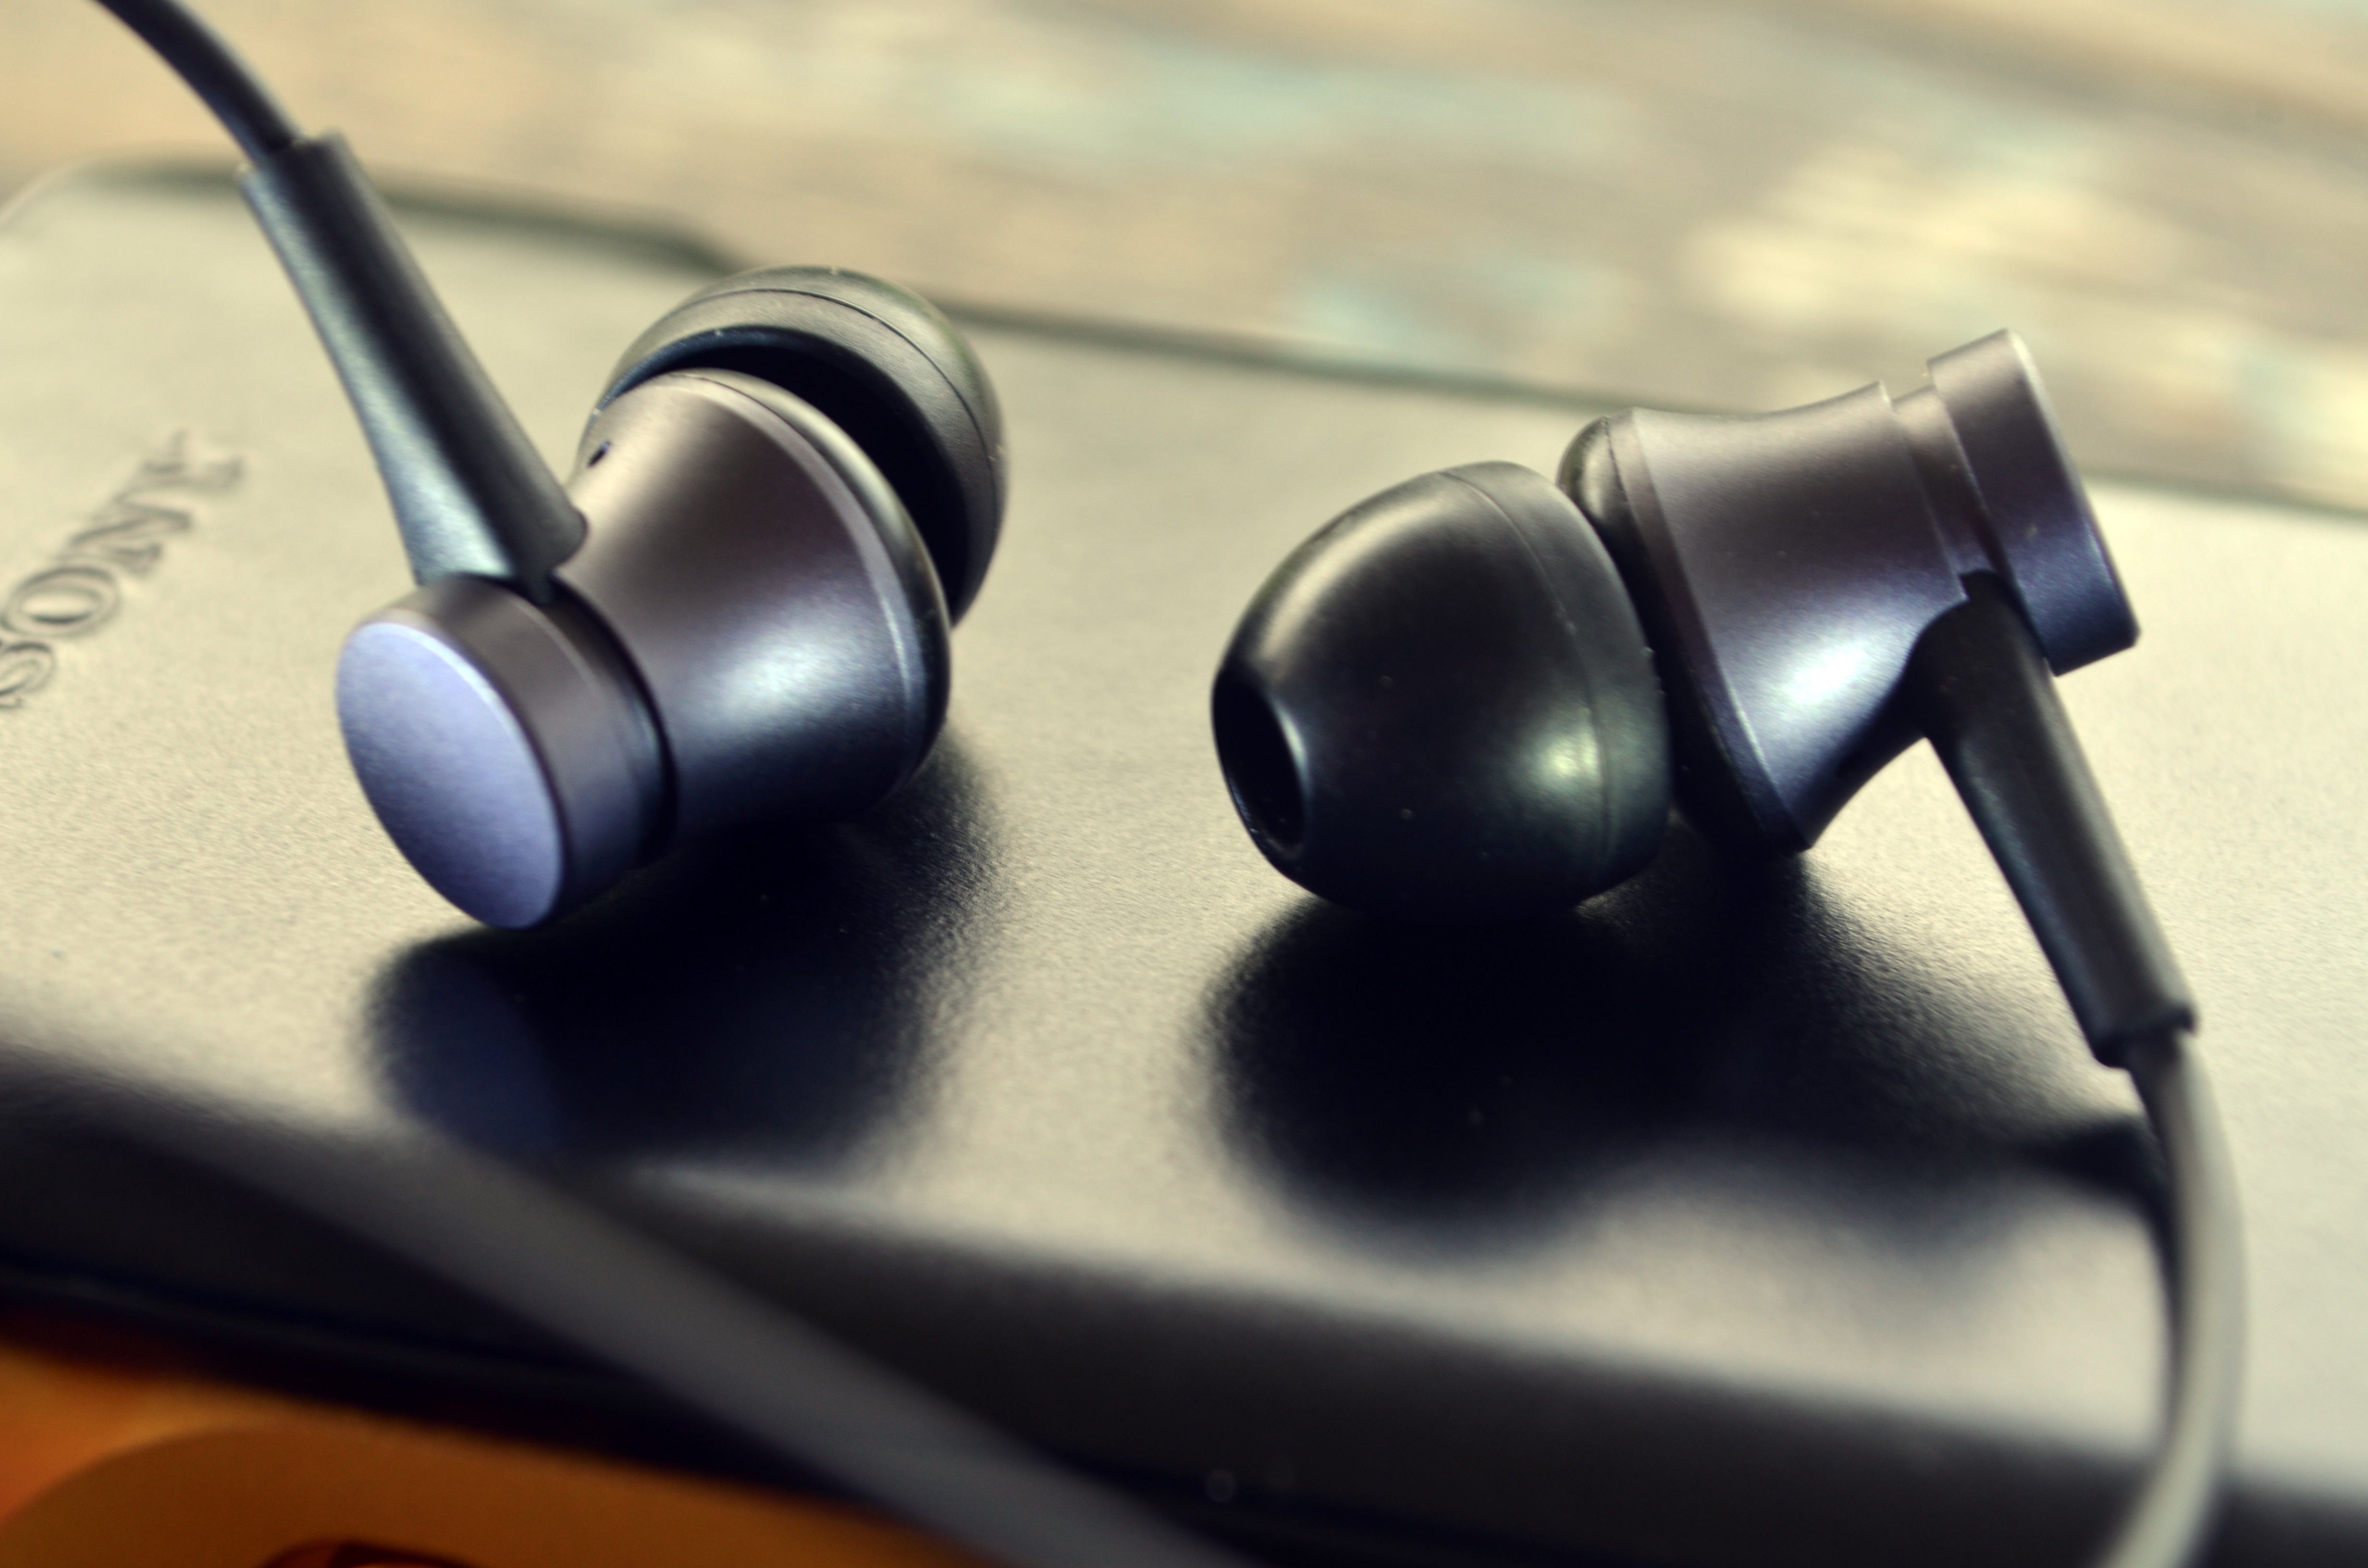 The New Piston Fresh Edition Headphone Reviews And Discussion Xiaomi 3 Colorful Earphone Original Hitam 51